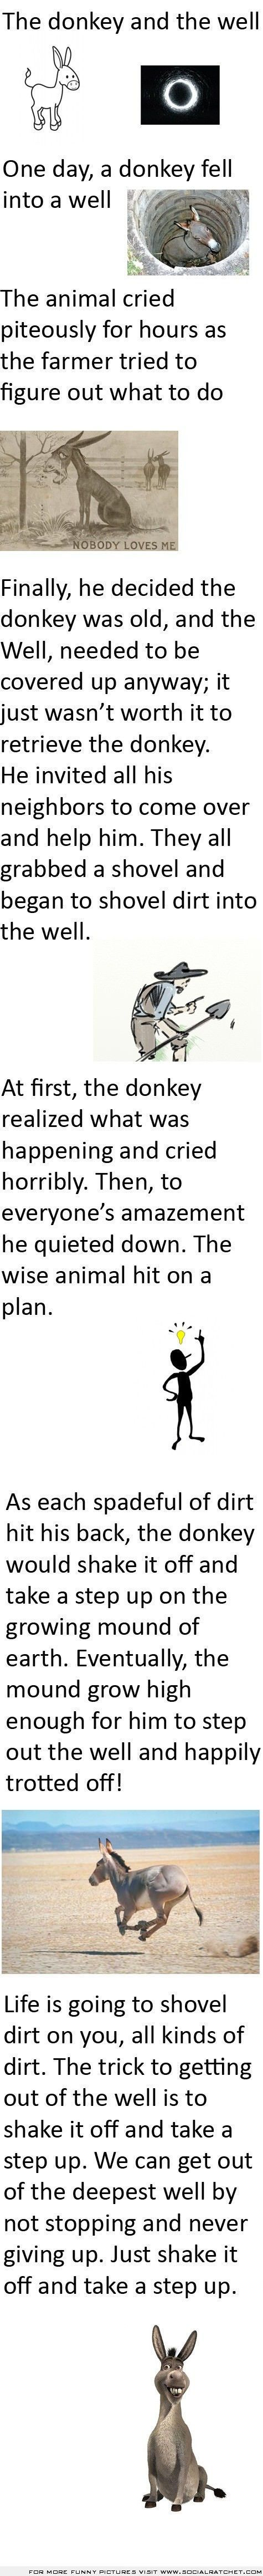 t first I was confused and almost cried thinking why would someone try to bury alive a donkey!! It's inhuman but then I read the last paragraph and guys, this is absolutely true you just have to shake that dirt off and keep moving forwards; in the donkeys case, upwards.